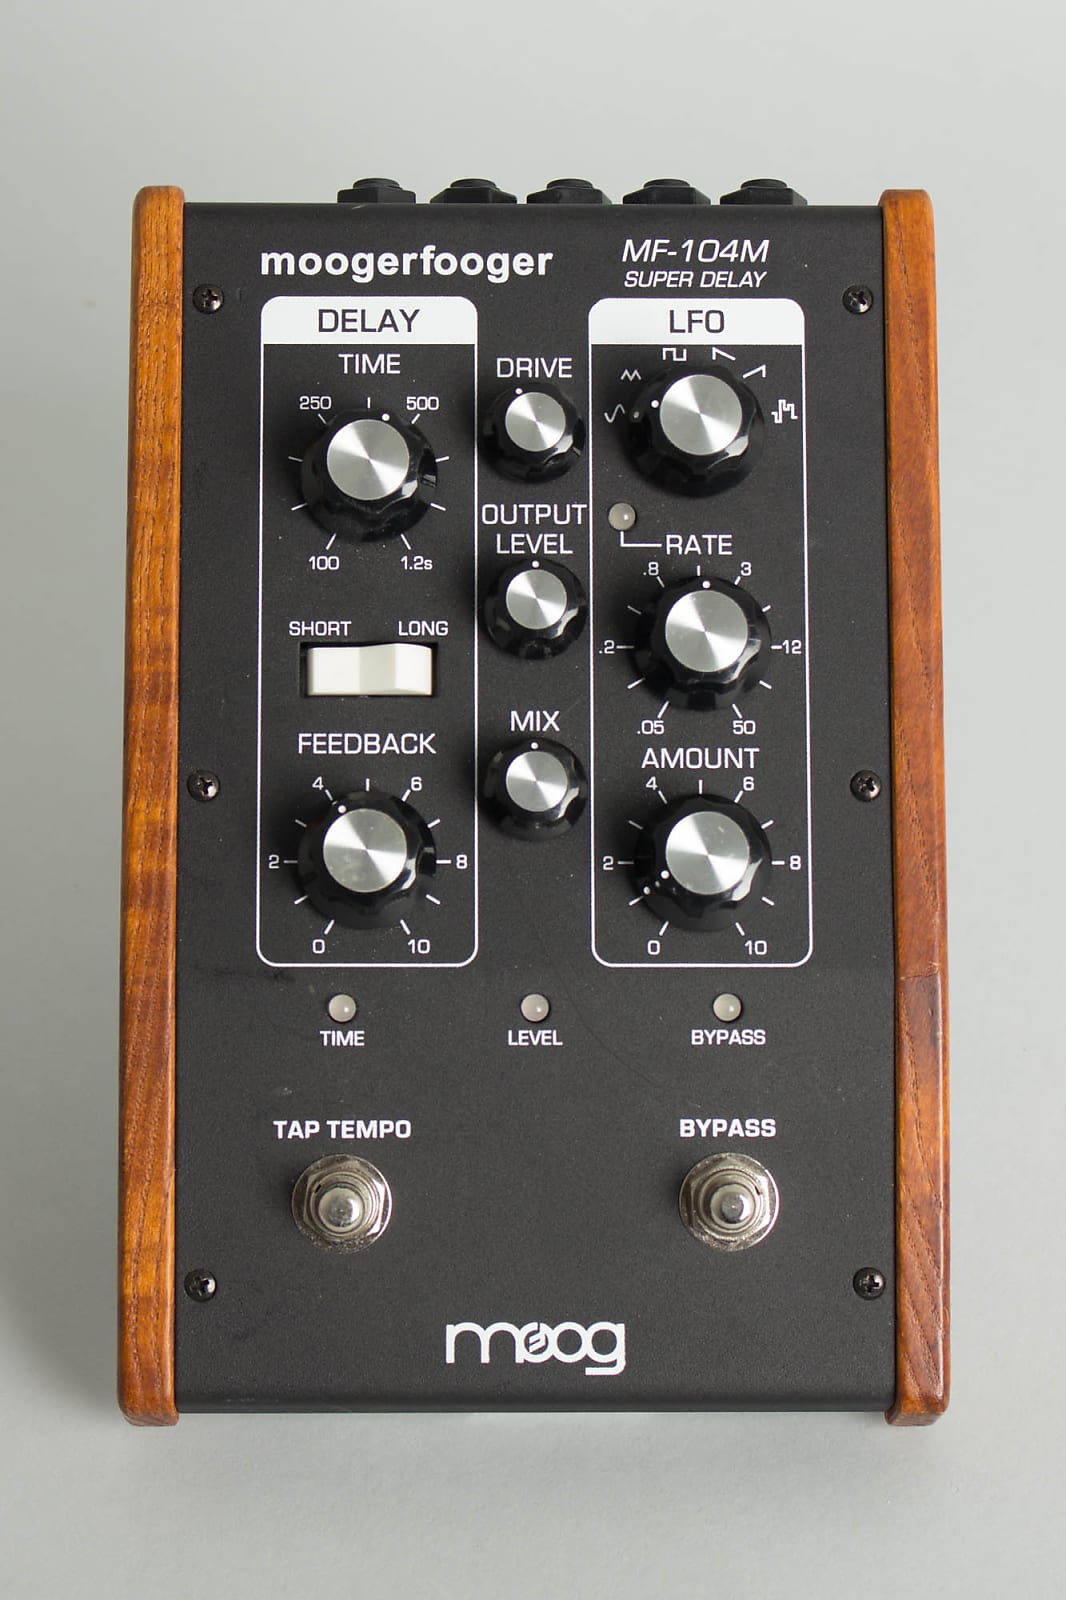 Moog Moogerfooger  MF-104M SD Super Delay,  Previously Owned by Steely Dan's Walter Becker Analog Delay Effect, ser. #0480.